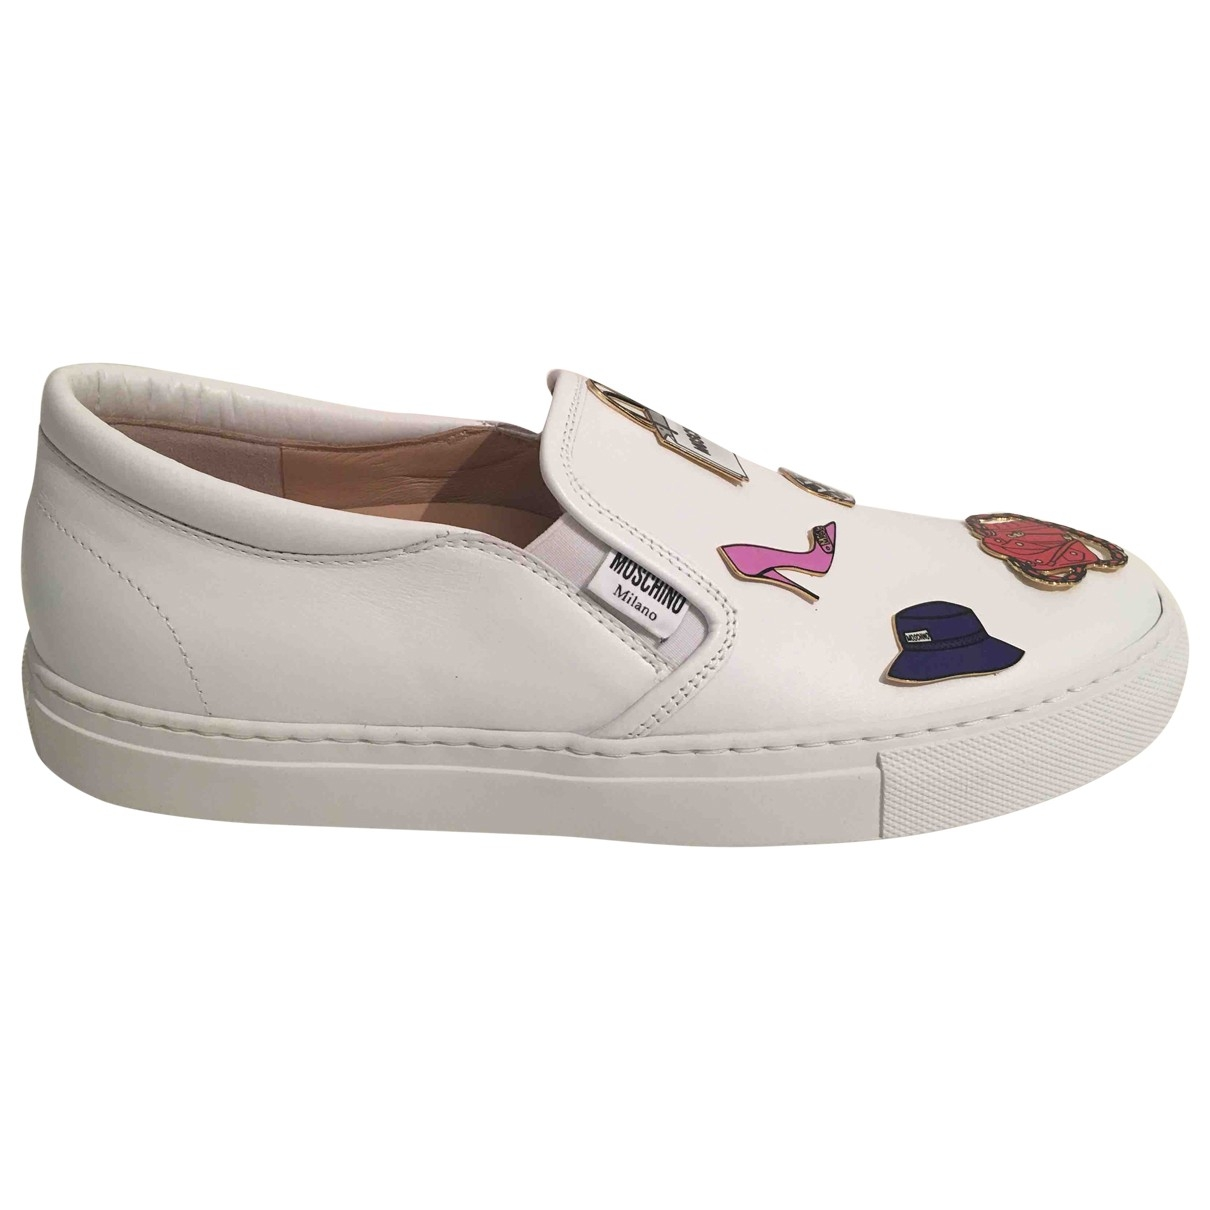 Moschino \N White Leather Trainers for Women 39 EU